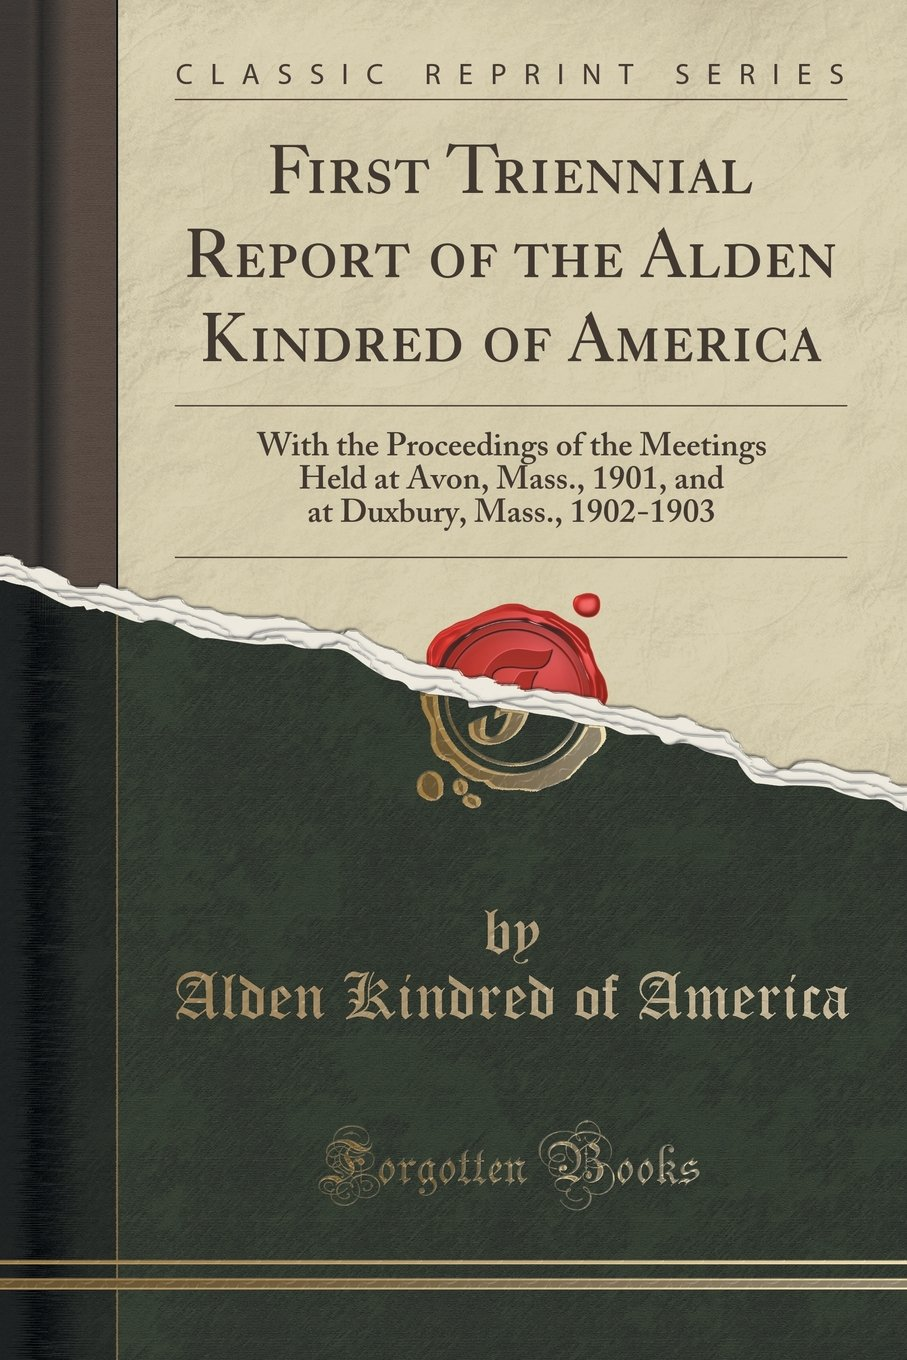 Read Online First Triennial Report of the Alden Kindred of America: With the Proceedings of the Meetings Held at Avon, Mass., 1901, and at Duxbury, Mass., 1902-1903 (Classic Reprint) ebook